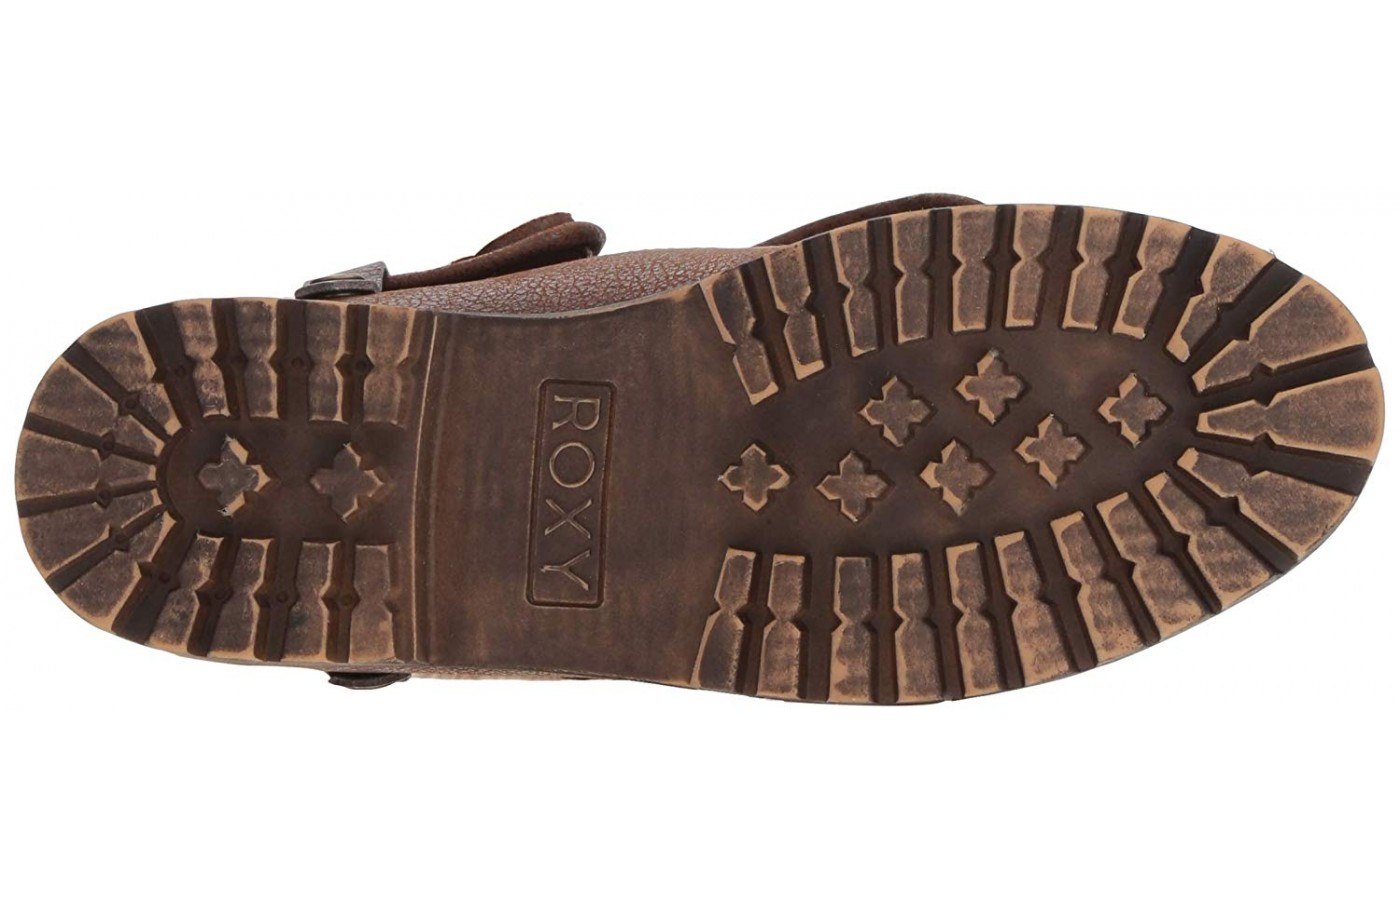 Lugged outsole